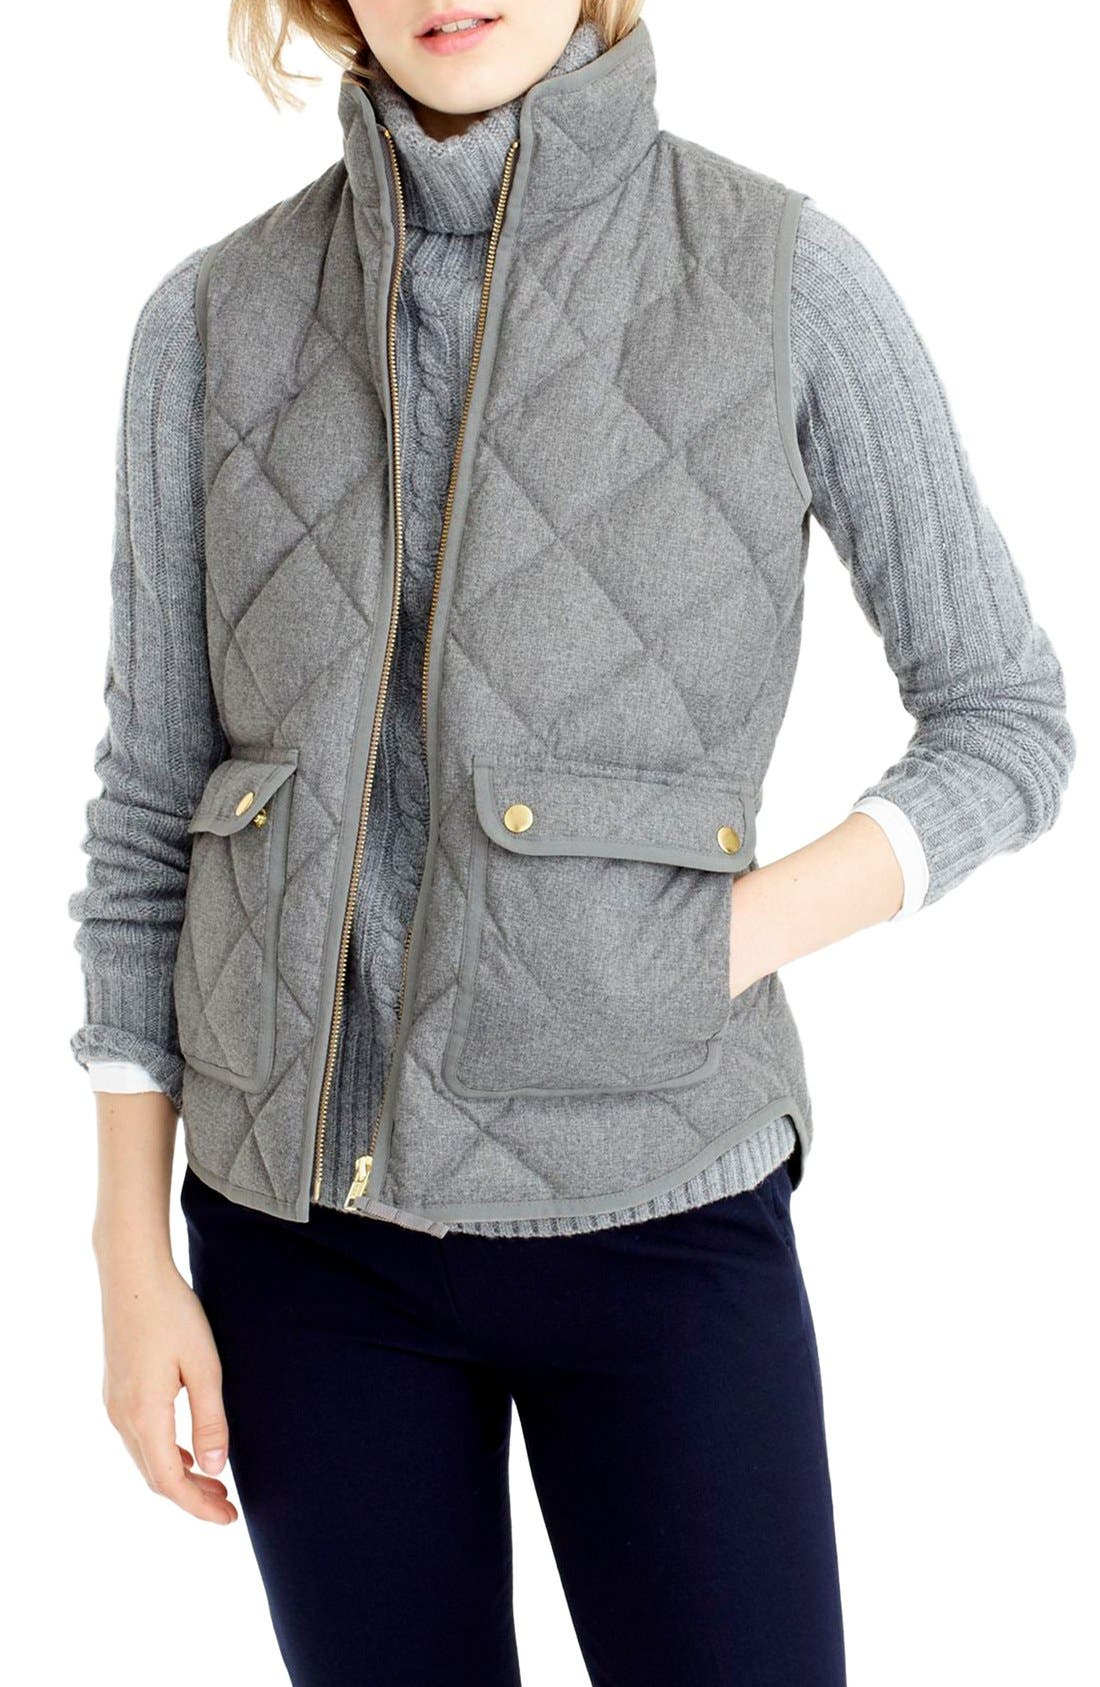 Main Image - J.Crew Excursion Quilted Flannel Vest (Regular & Petite)